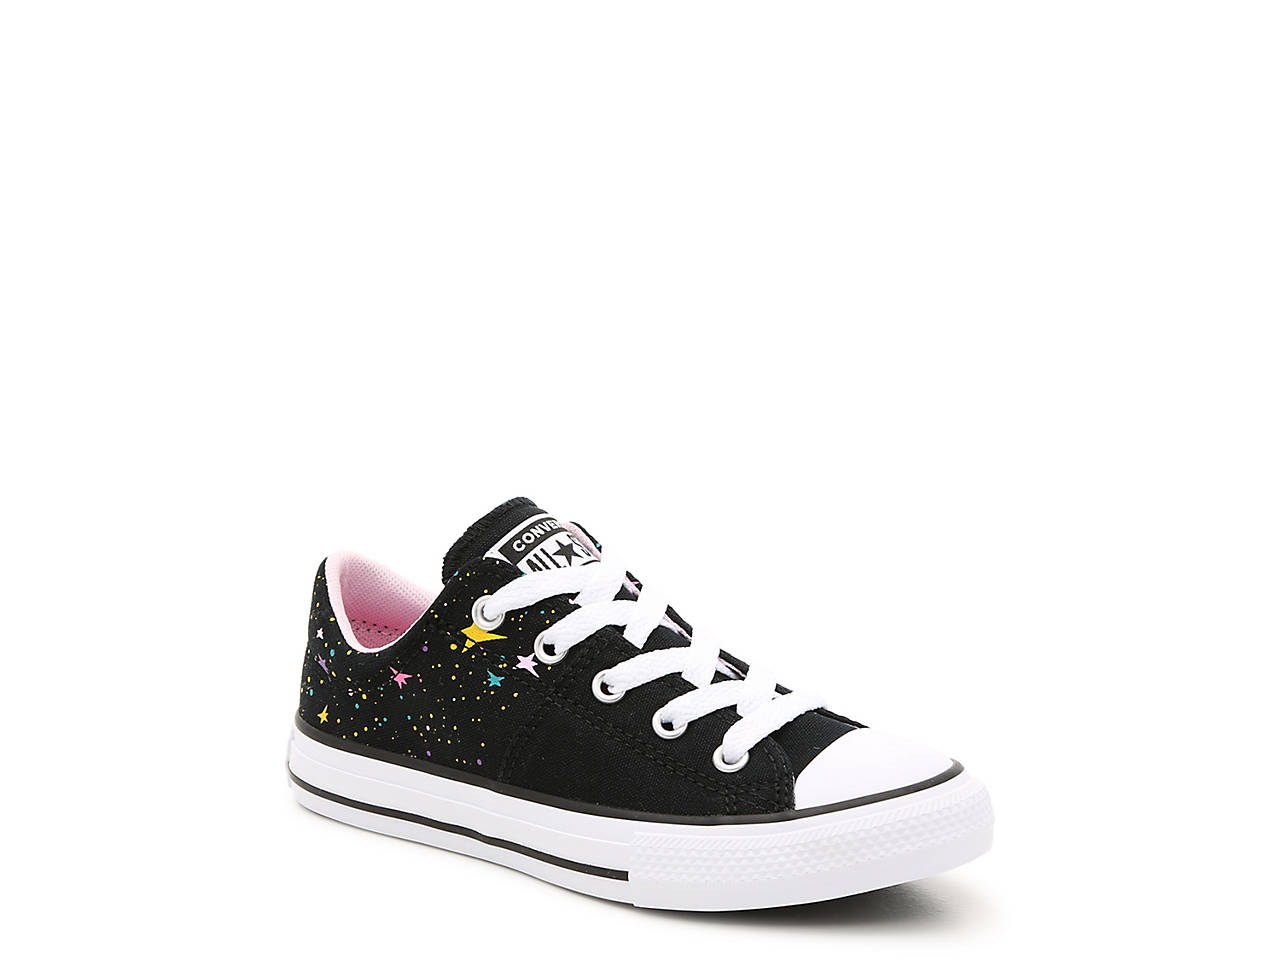 Converse Chuck Taylor All Star Madison Gravity Sneaker